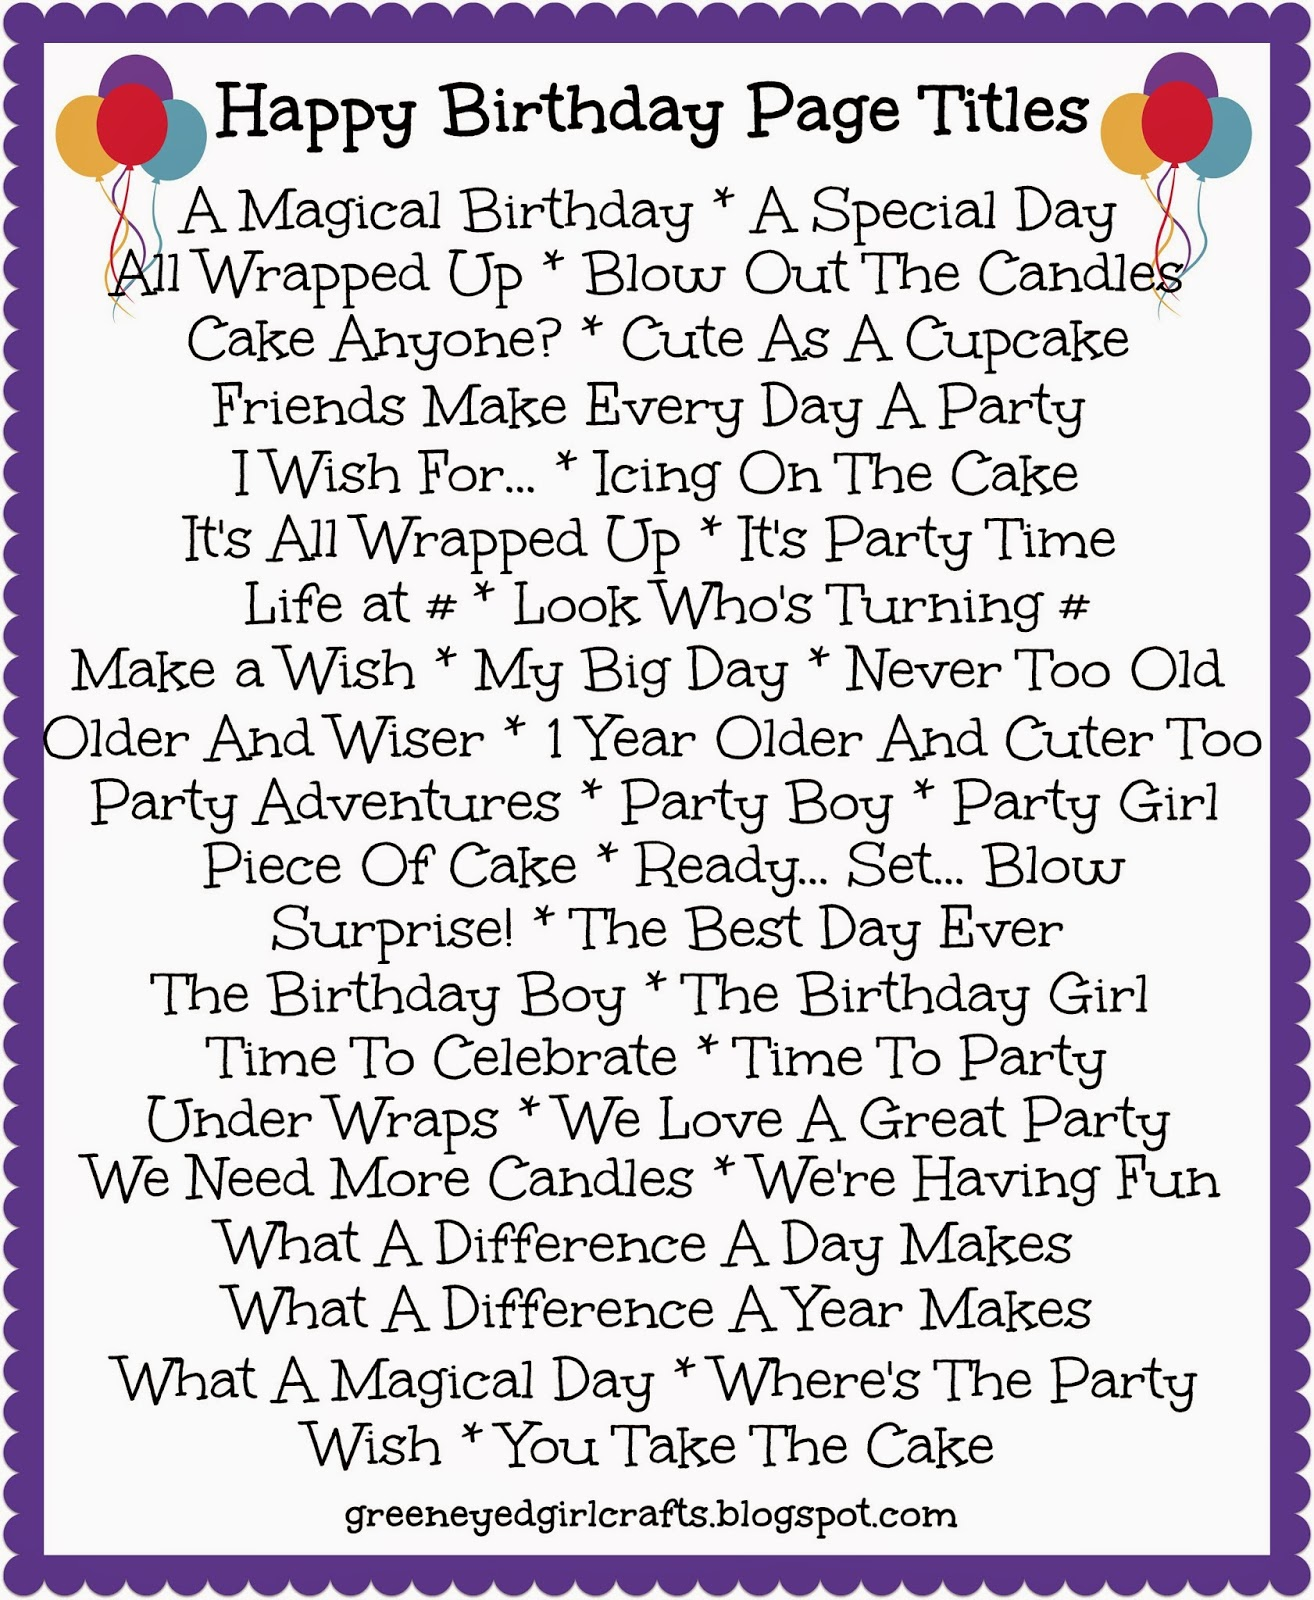 Green Eyed Girl Crafts...: Birthday Title Pages